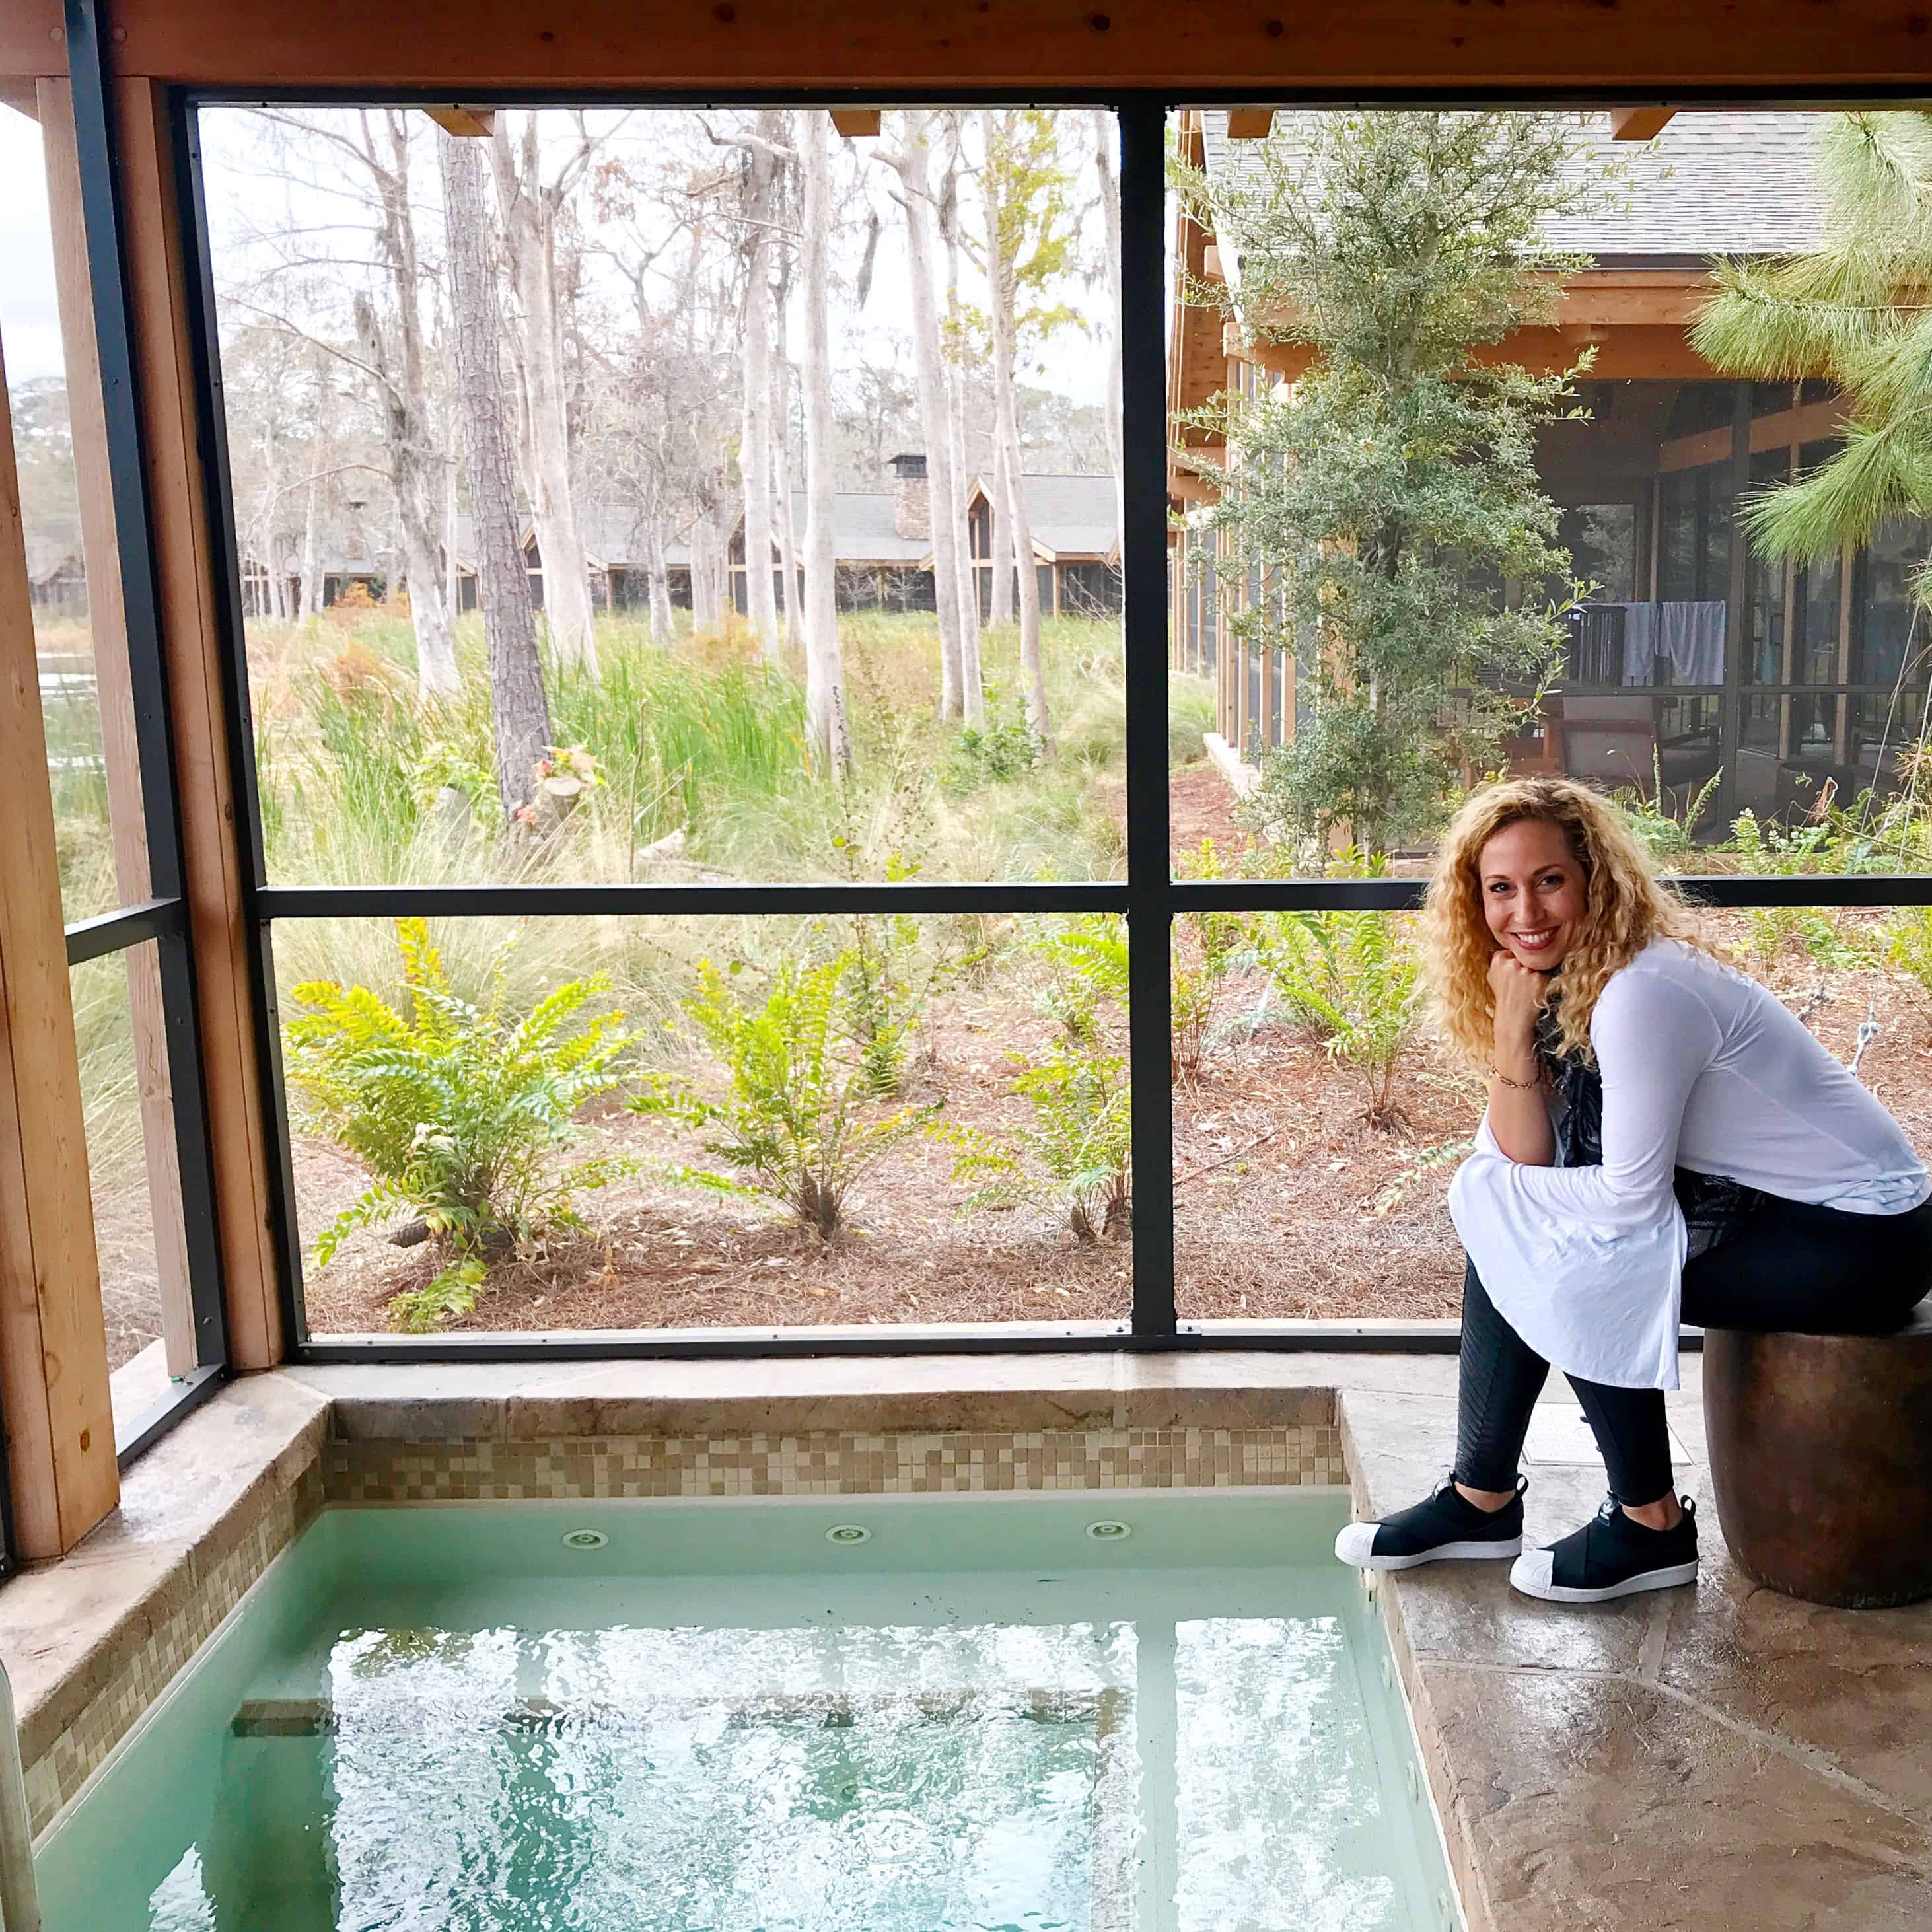 5 Reasons To Stay At Disney's Copper Creek Villas And